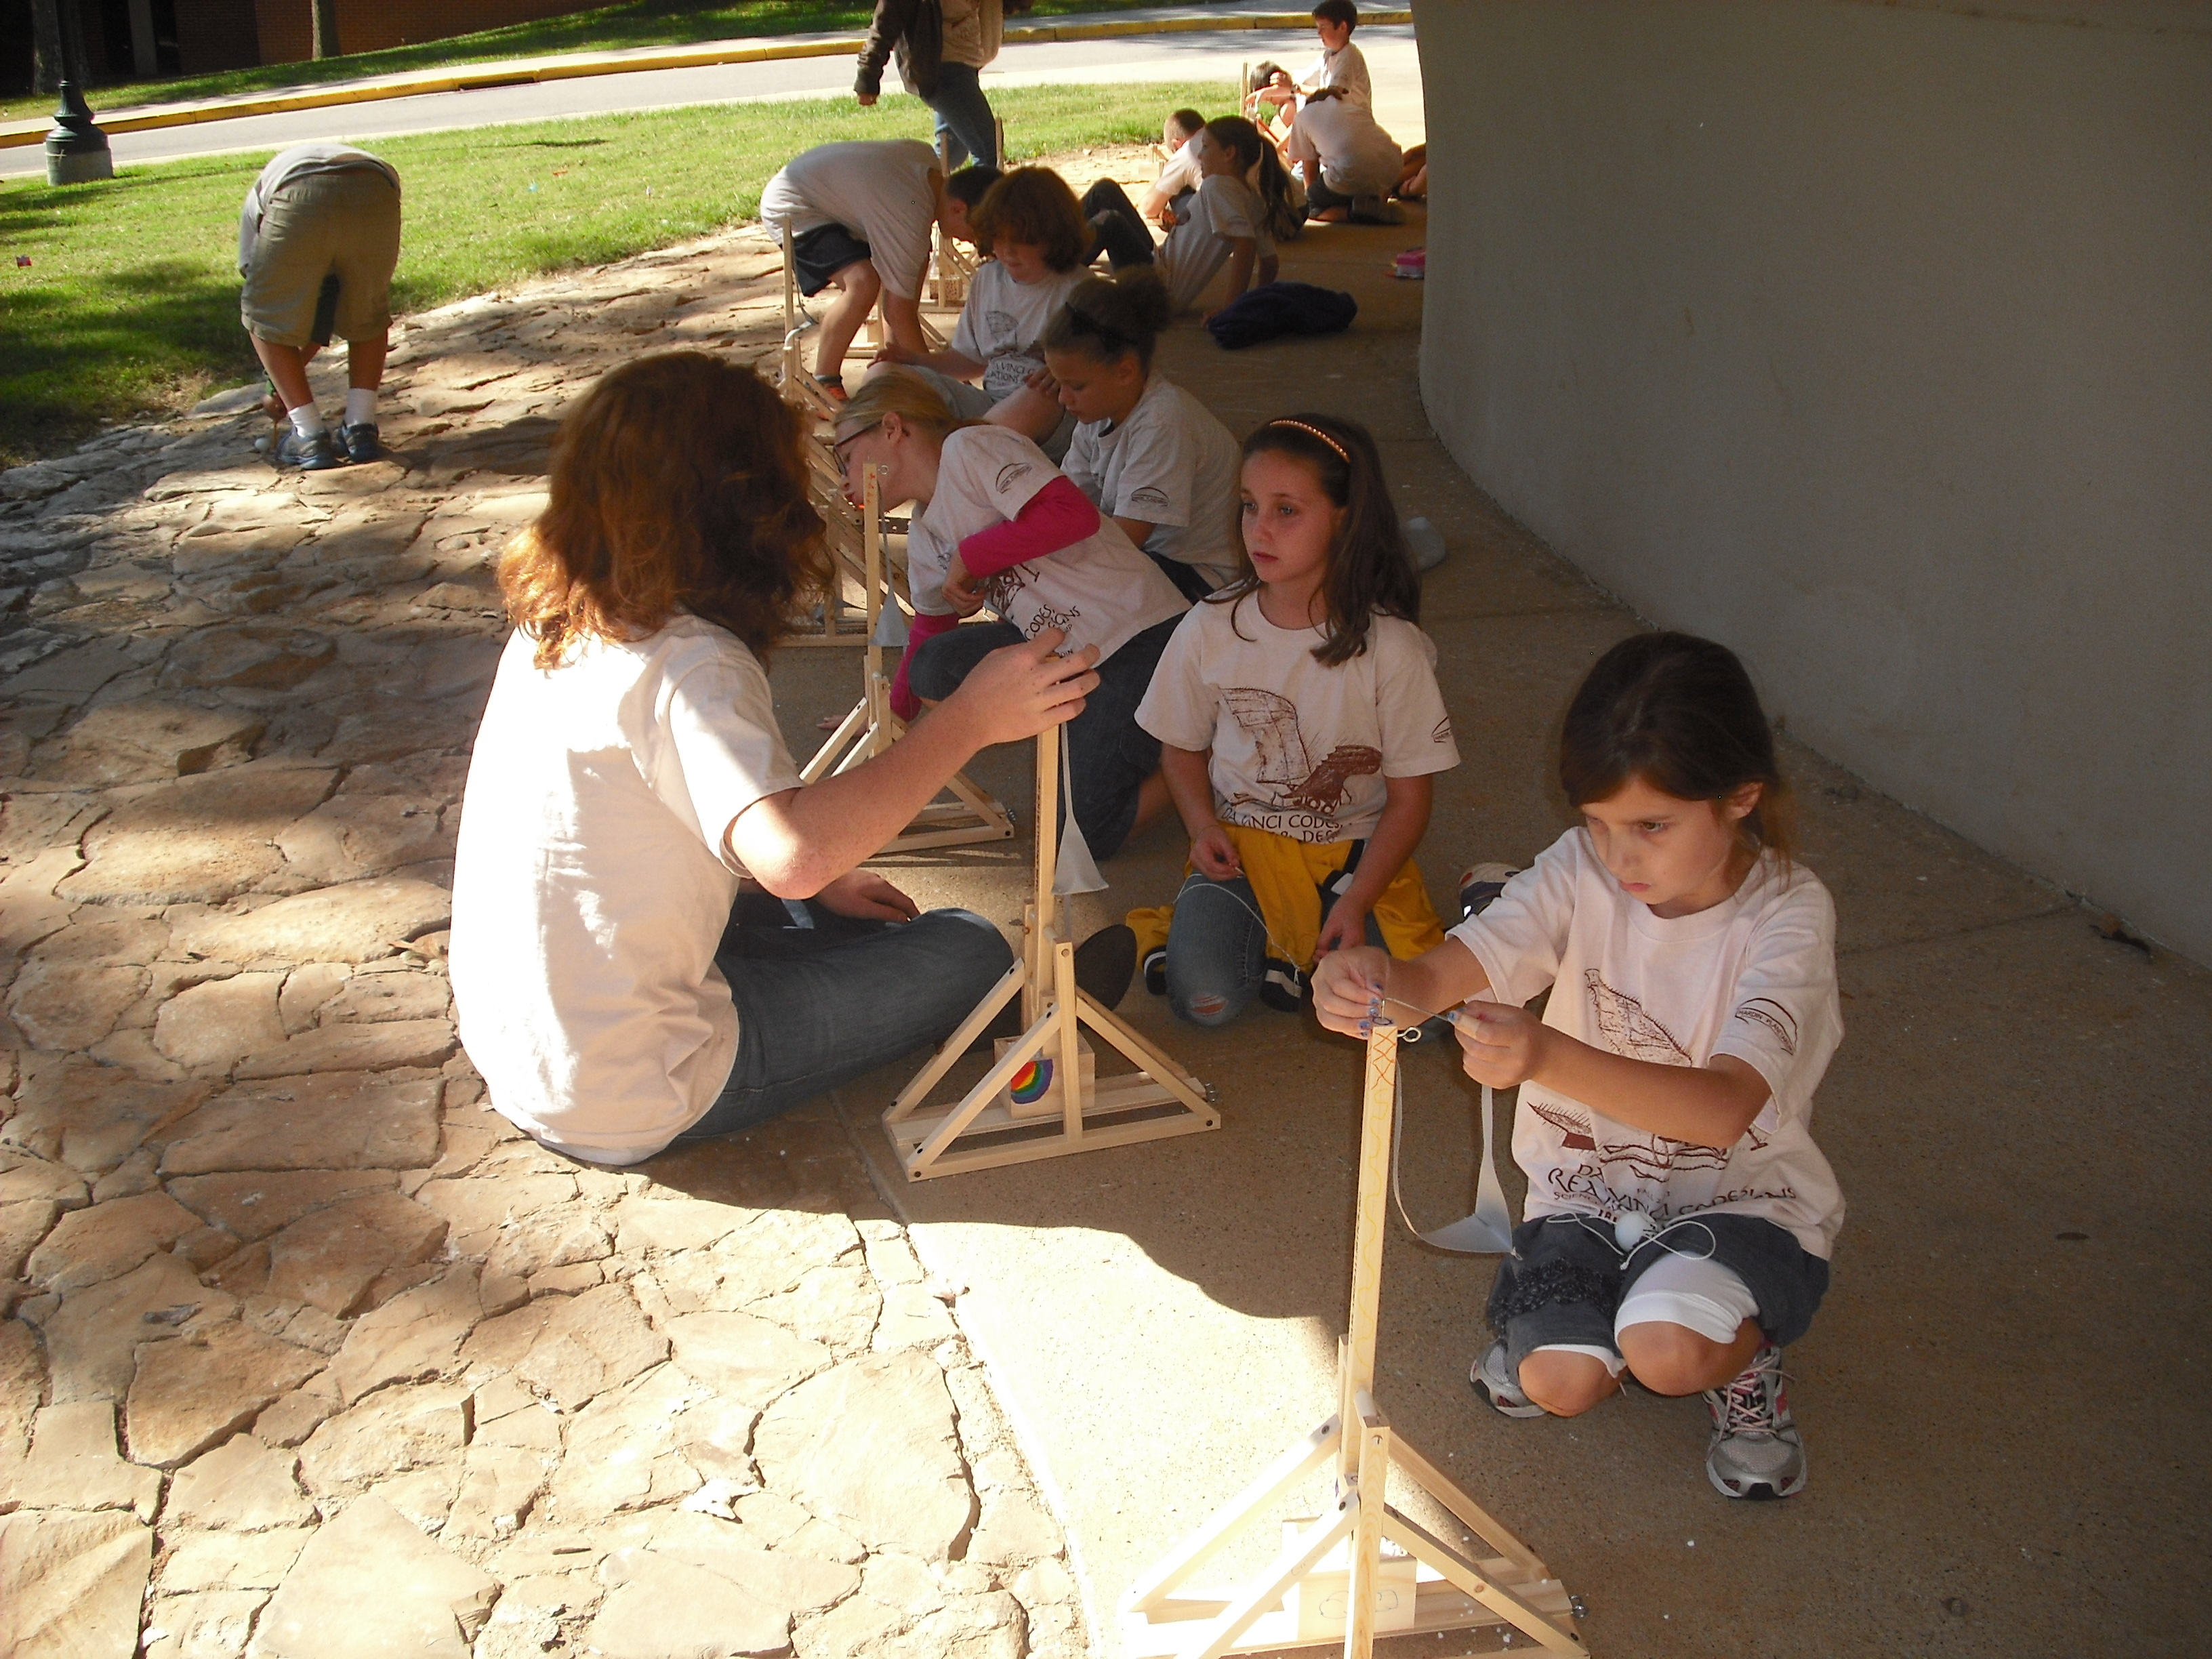 Students build their Trebuchets